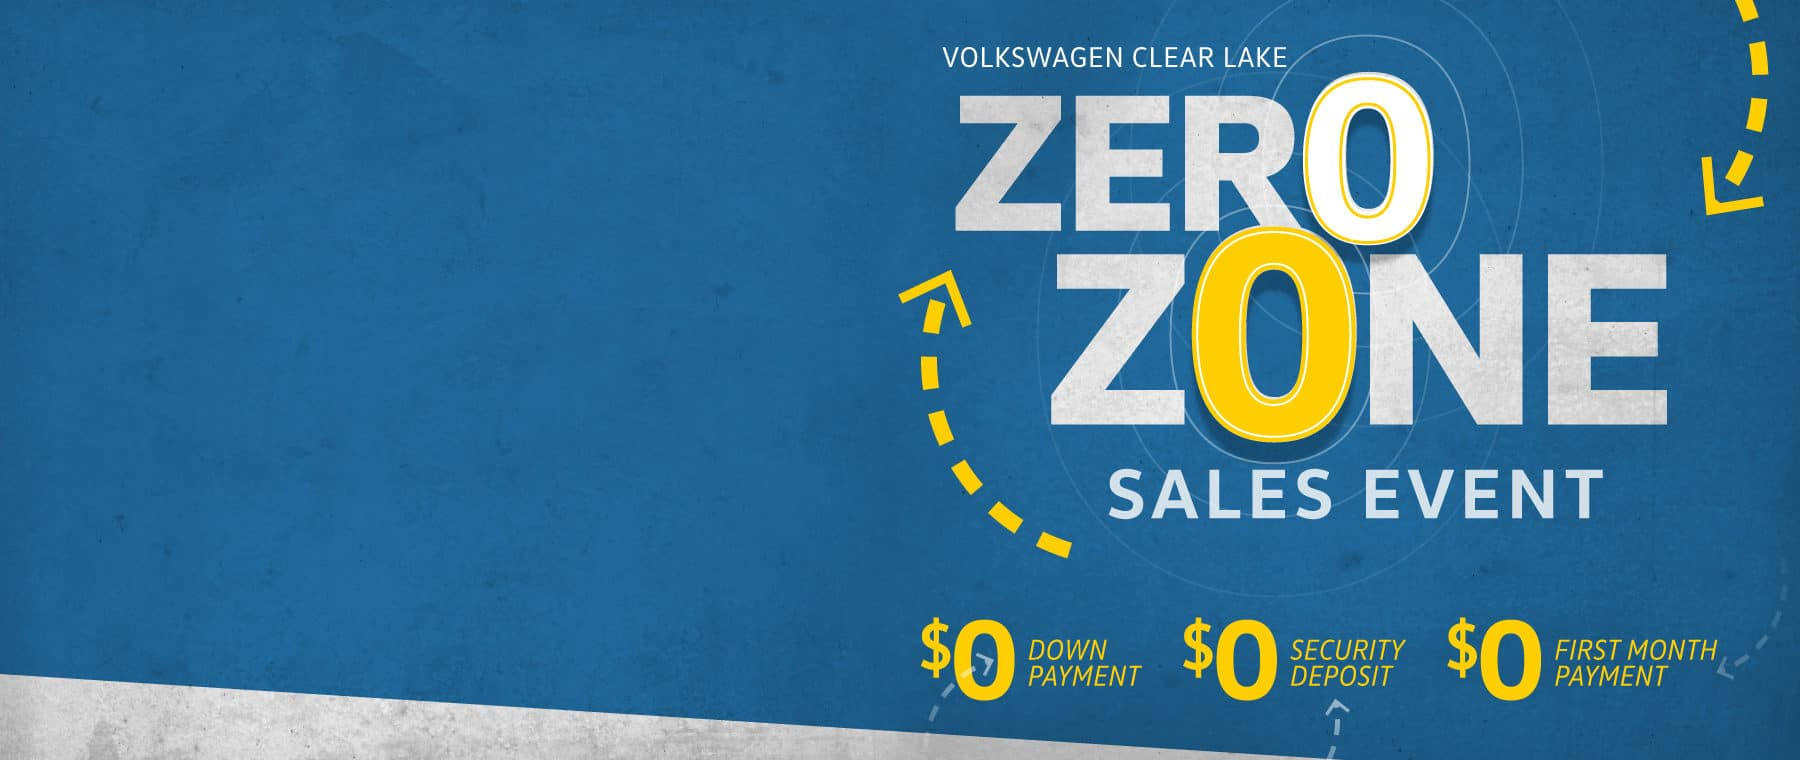 Volkswagen Clear Lake ZERO Zone sale Grand Opening Sale